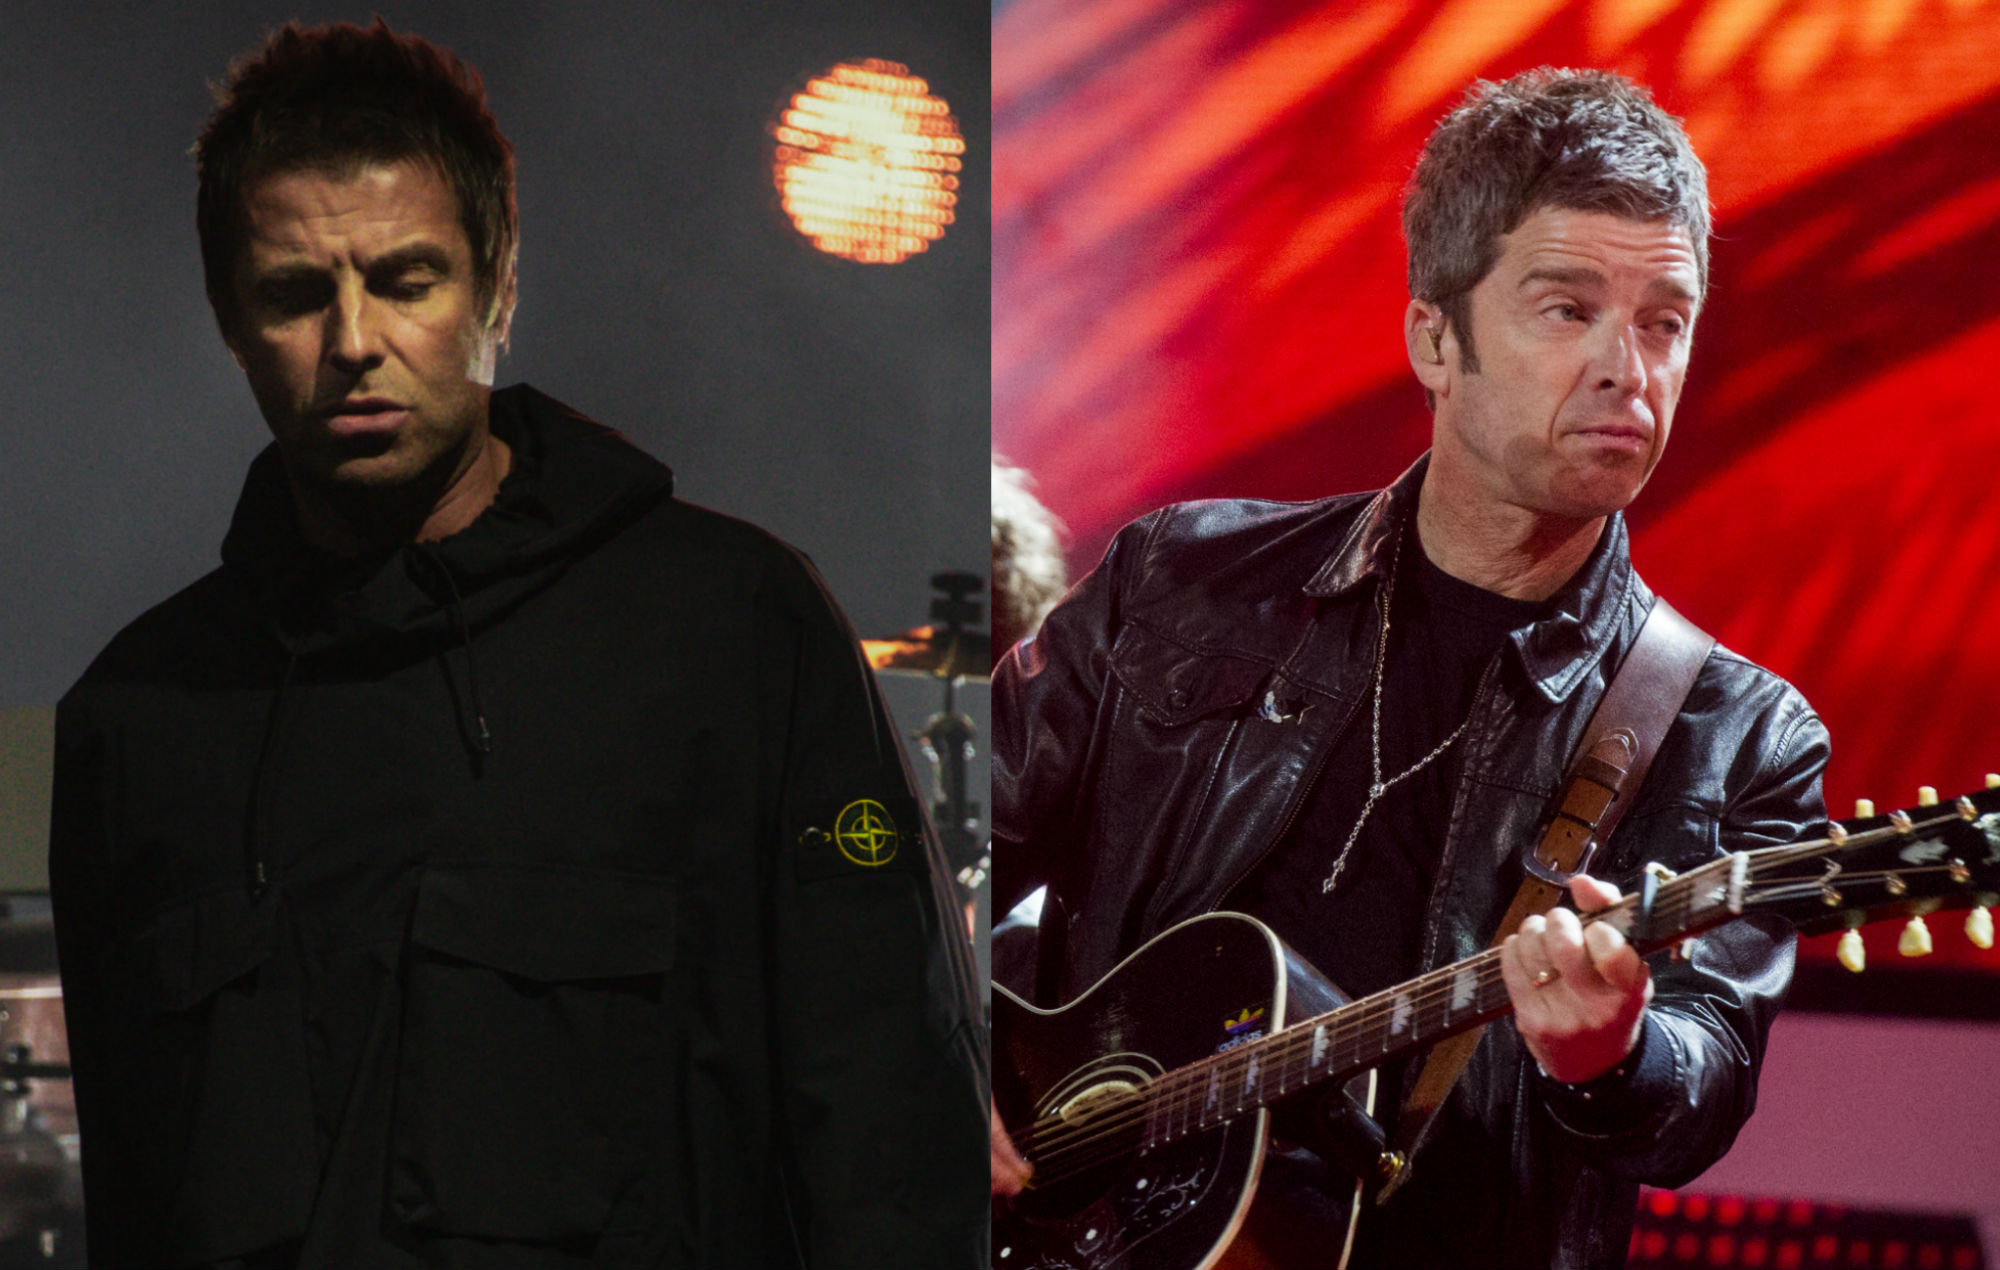 Liam Gallagher has accused Noel of trying to shut down his Twitter account